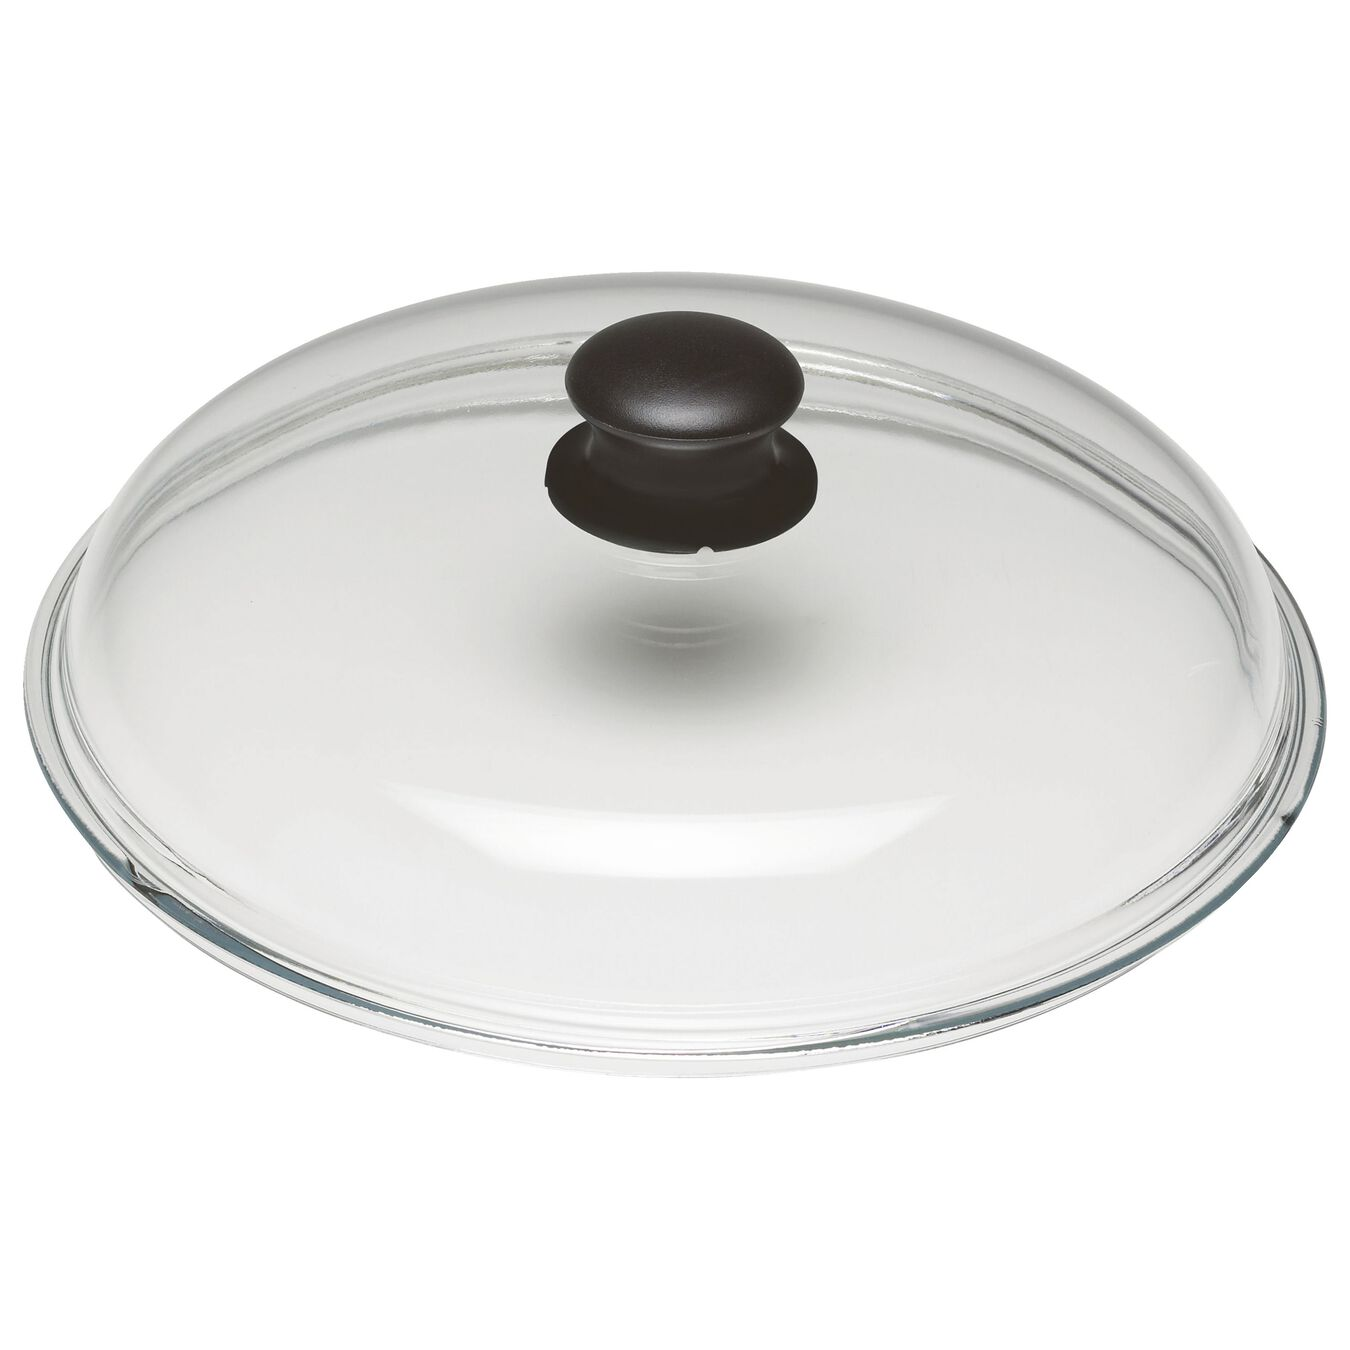 Couvercle, round | Glass,,large 1